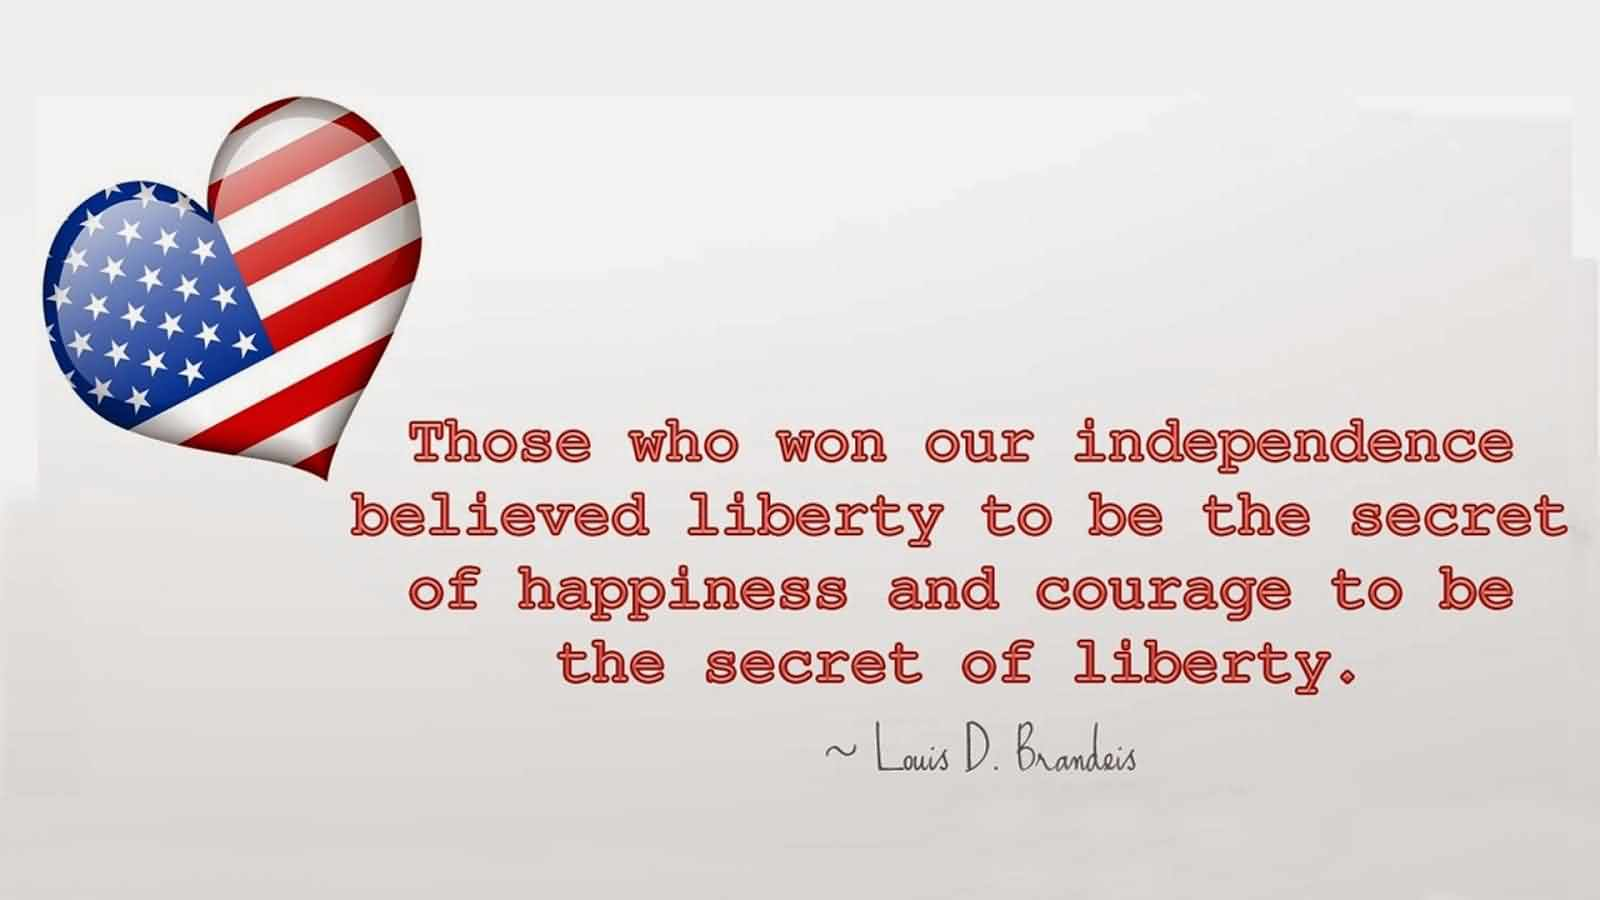 The Fourth of July Independence Day Quotes By Louis D. Brandeis Wishes Message Image